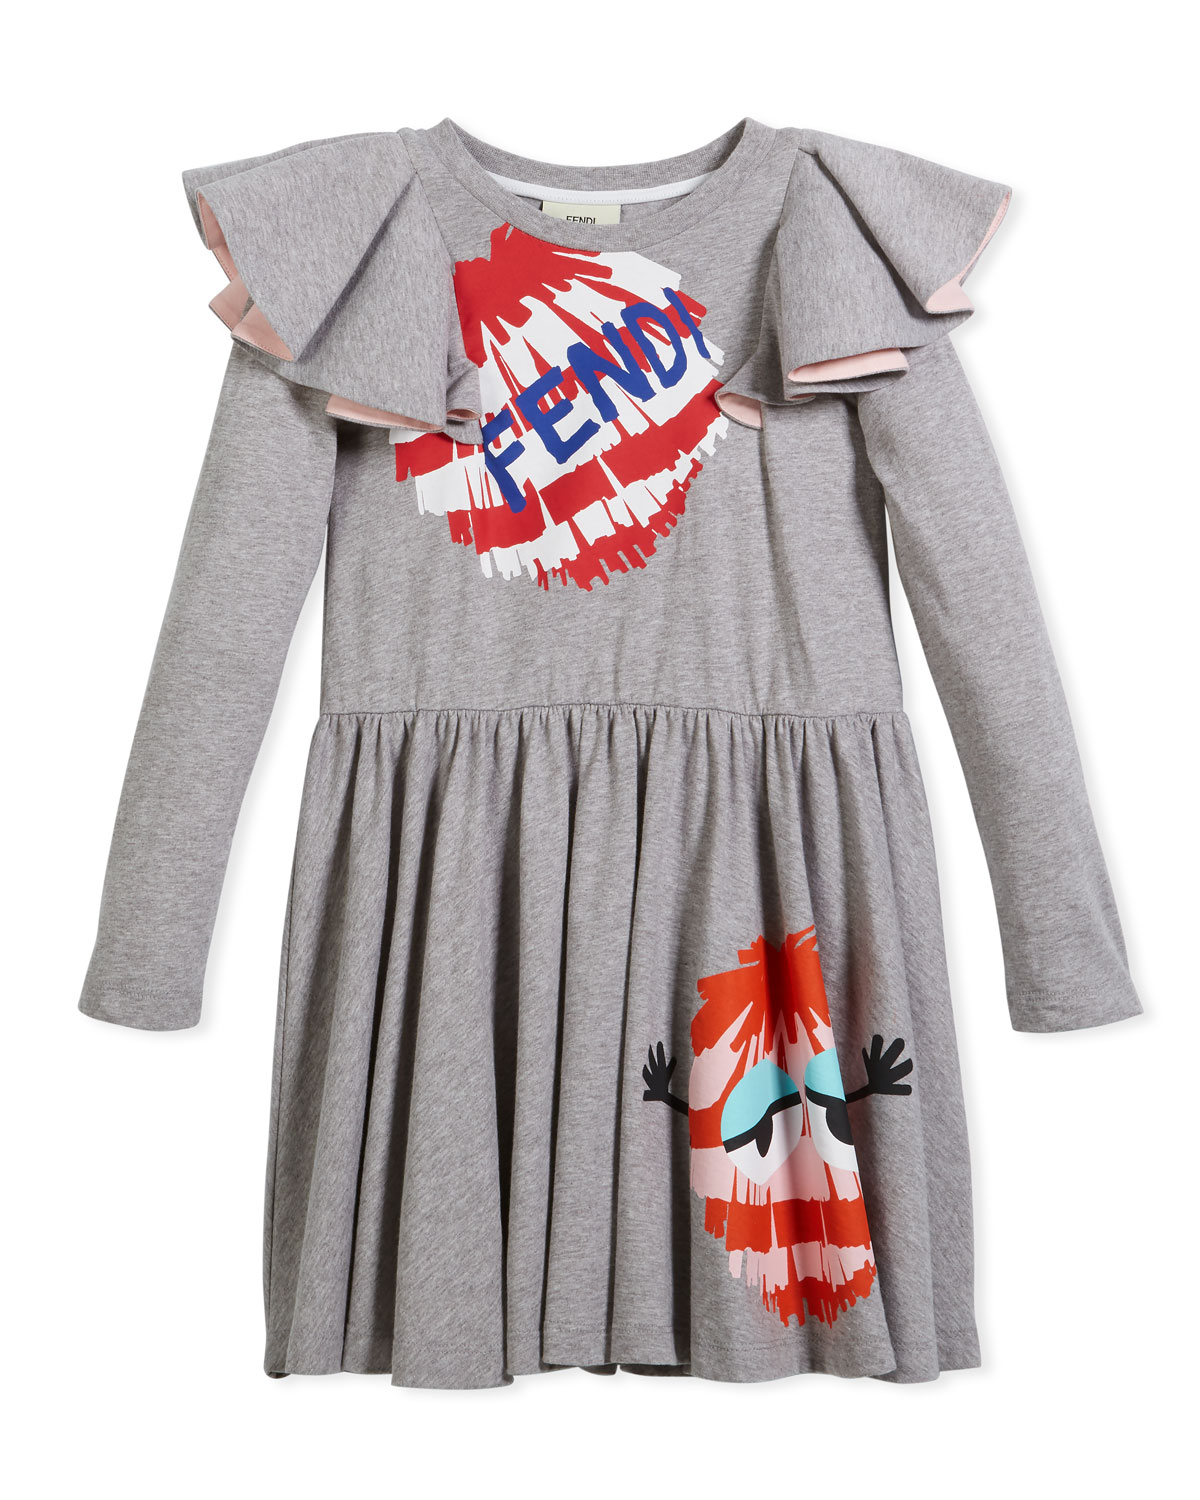 Long-Sleeve Ruffle Jersey Dress w/ Monster Pompom Graphic, Size 10-14